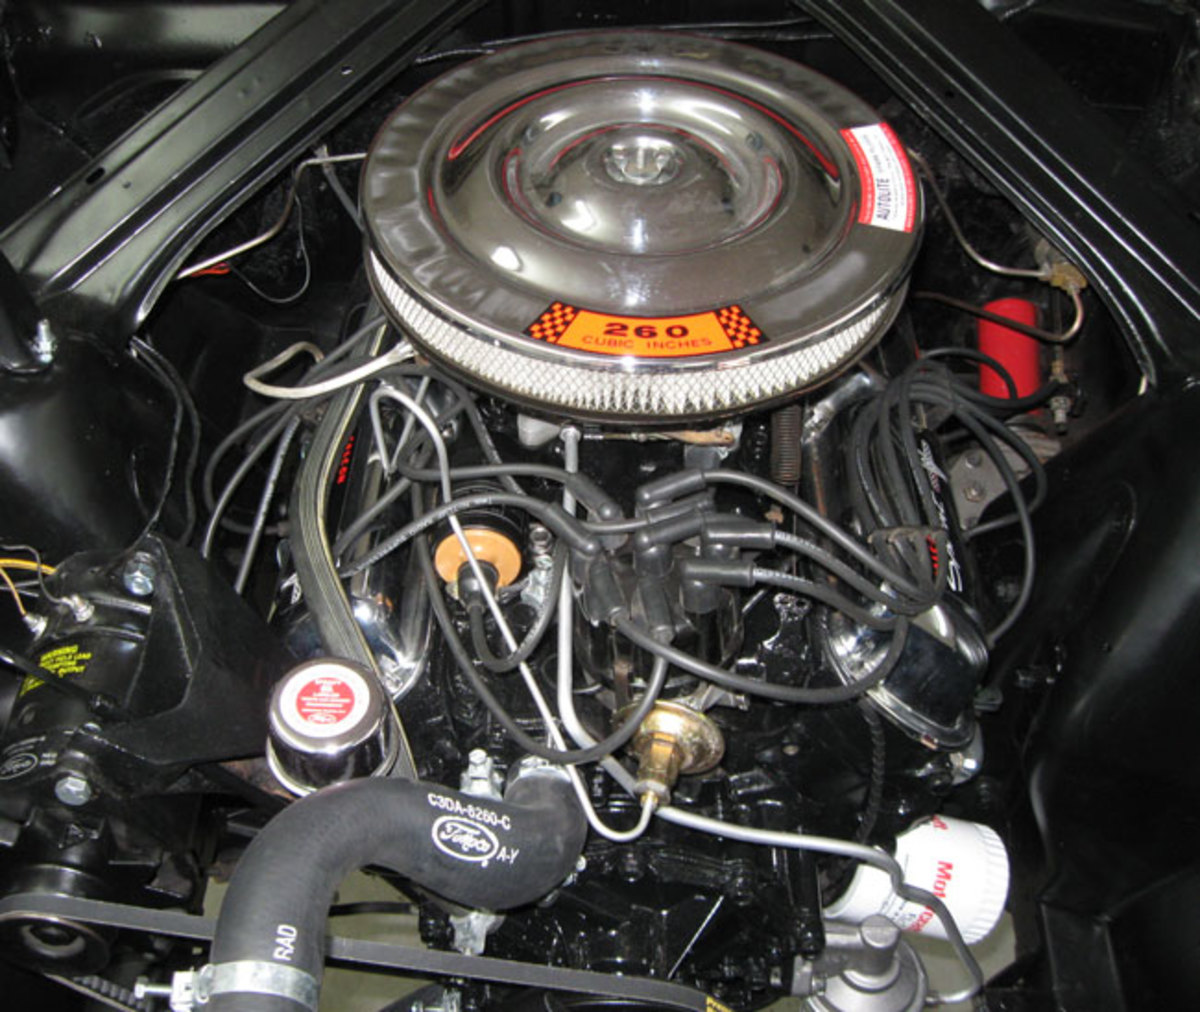 1963-Sprint-engine-use